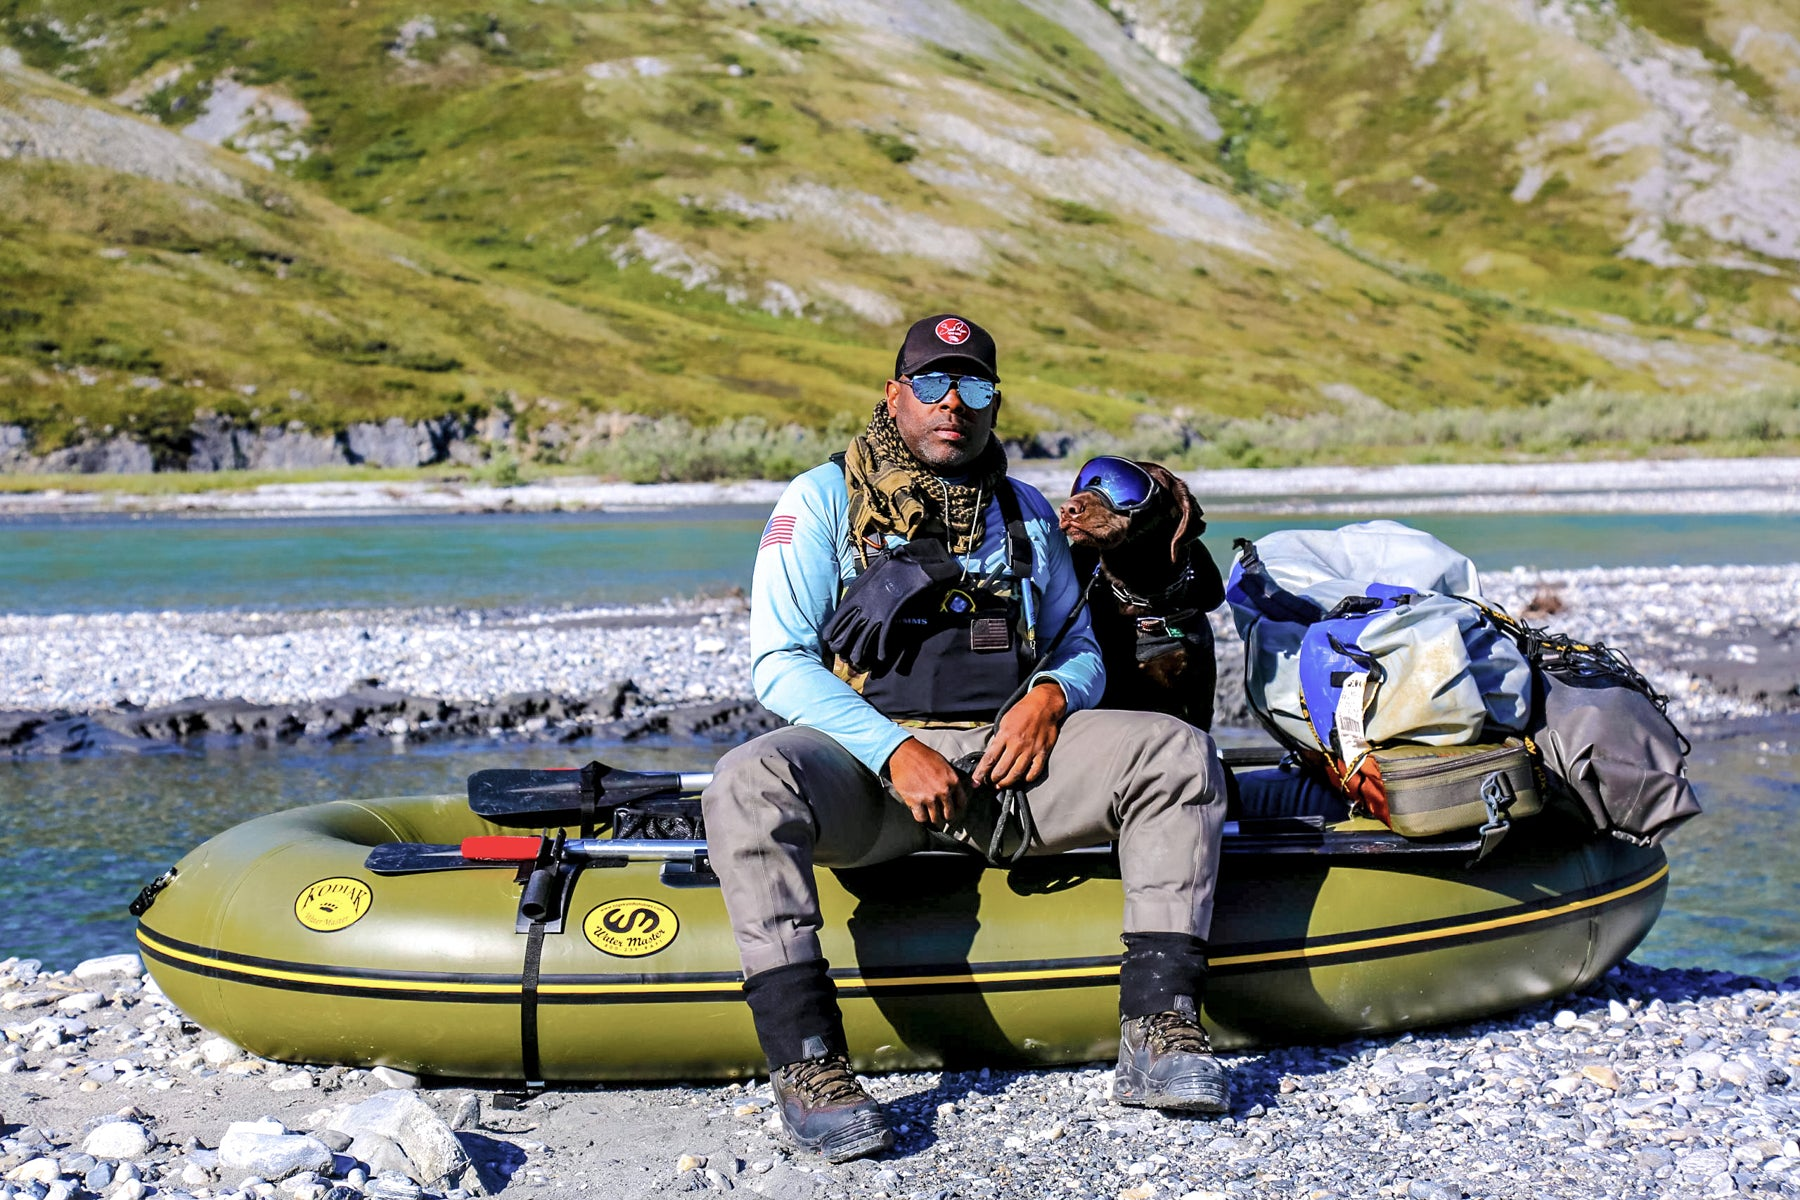 Chad and Axe in water gear and sunglasses sit on a raft next to the river.